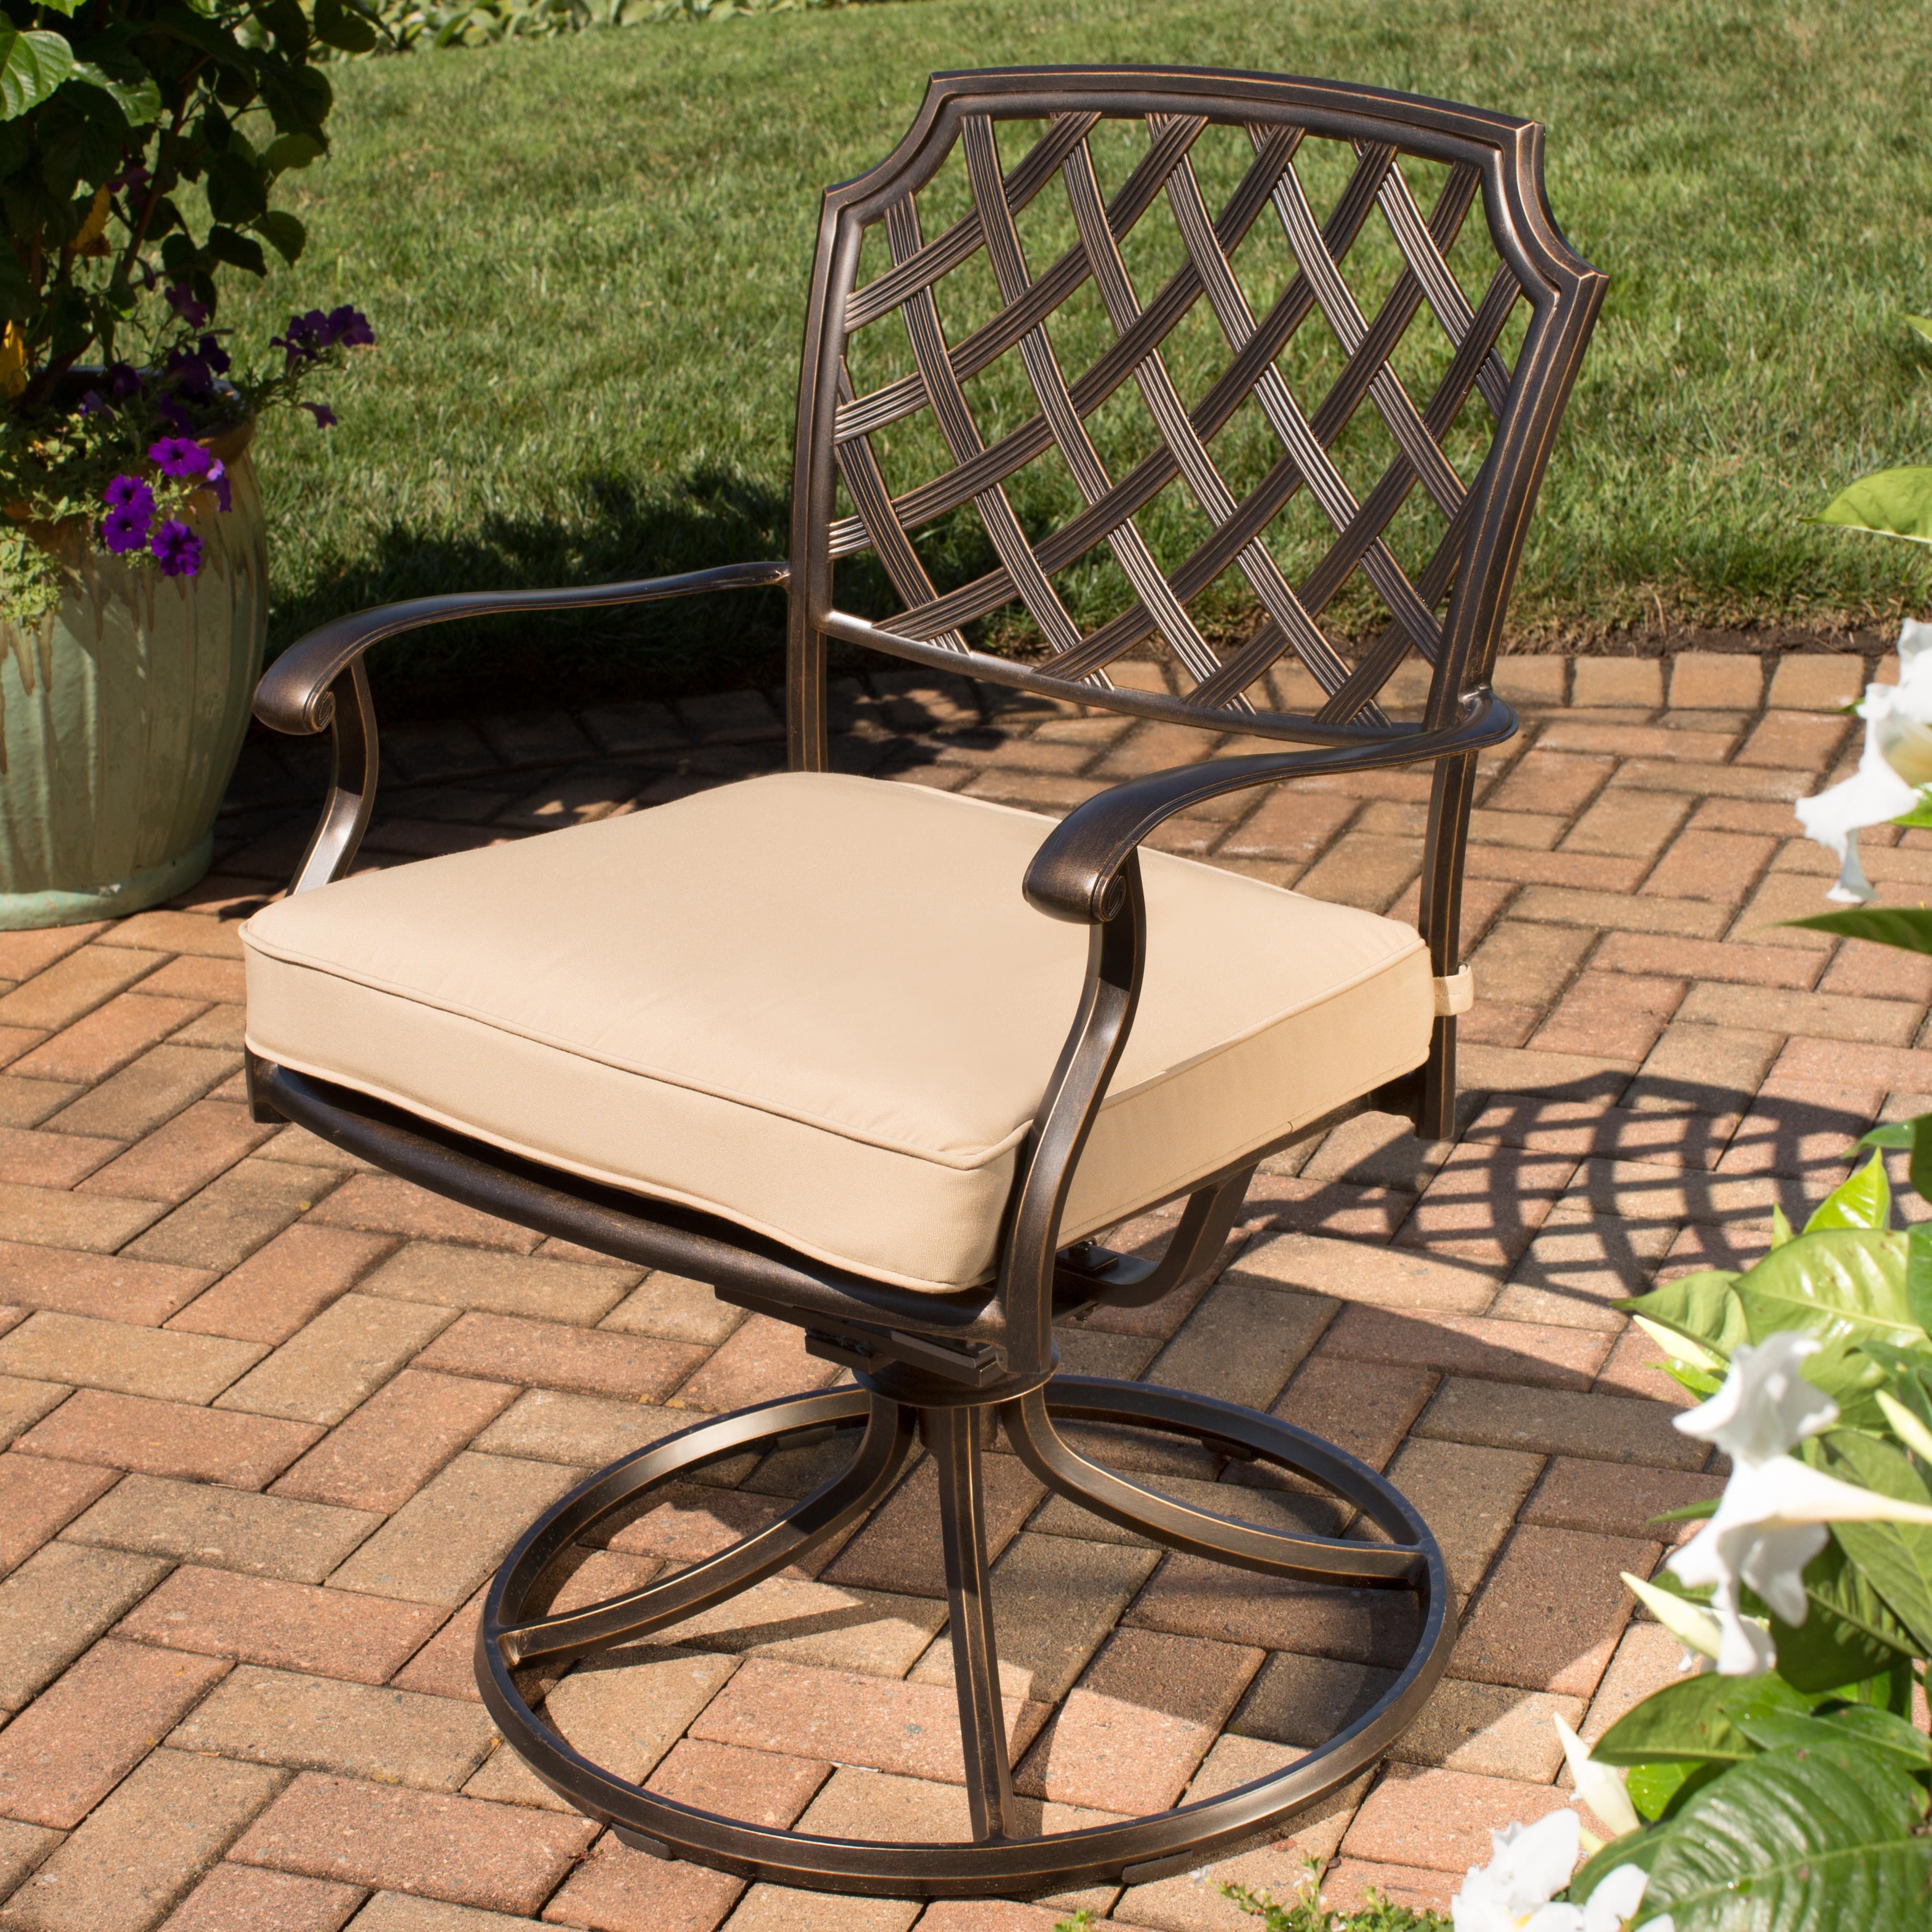 Agio Heritage Alumicast Outdoor Swivel Rocker Arm Chair Basket